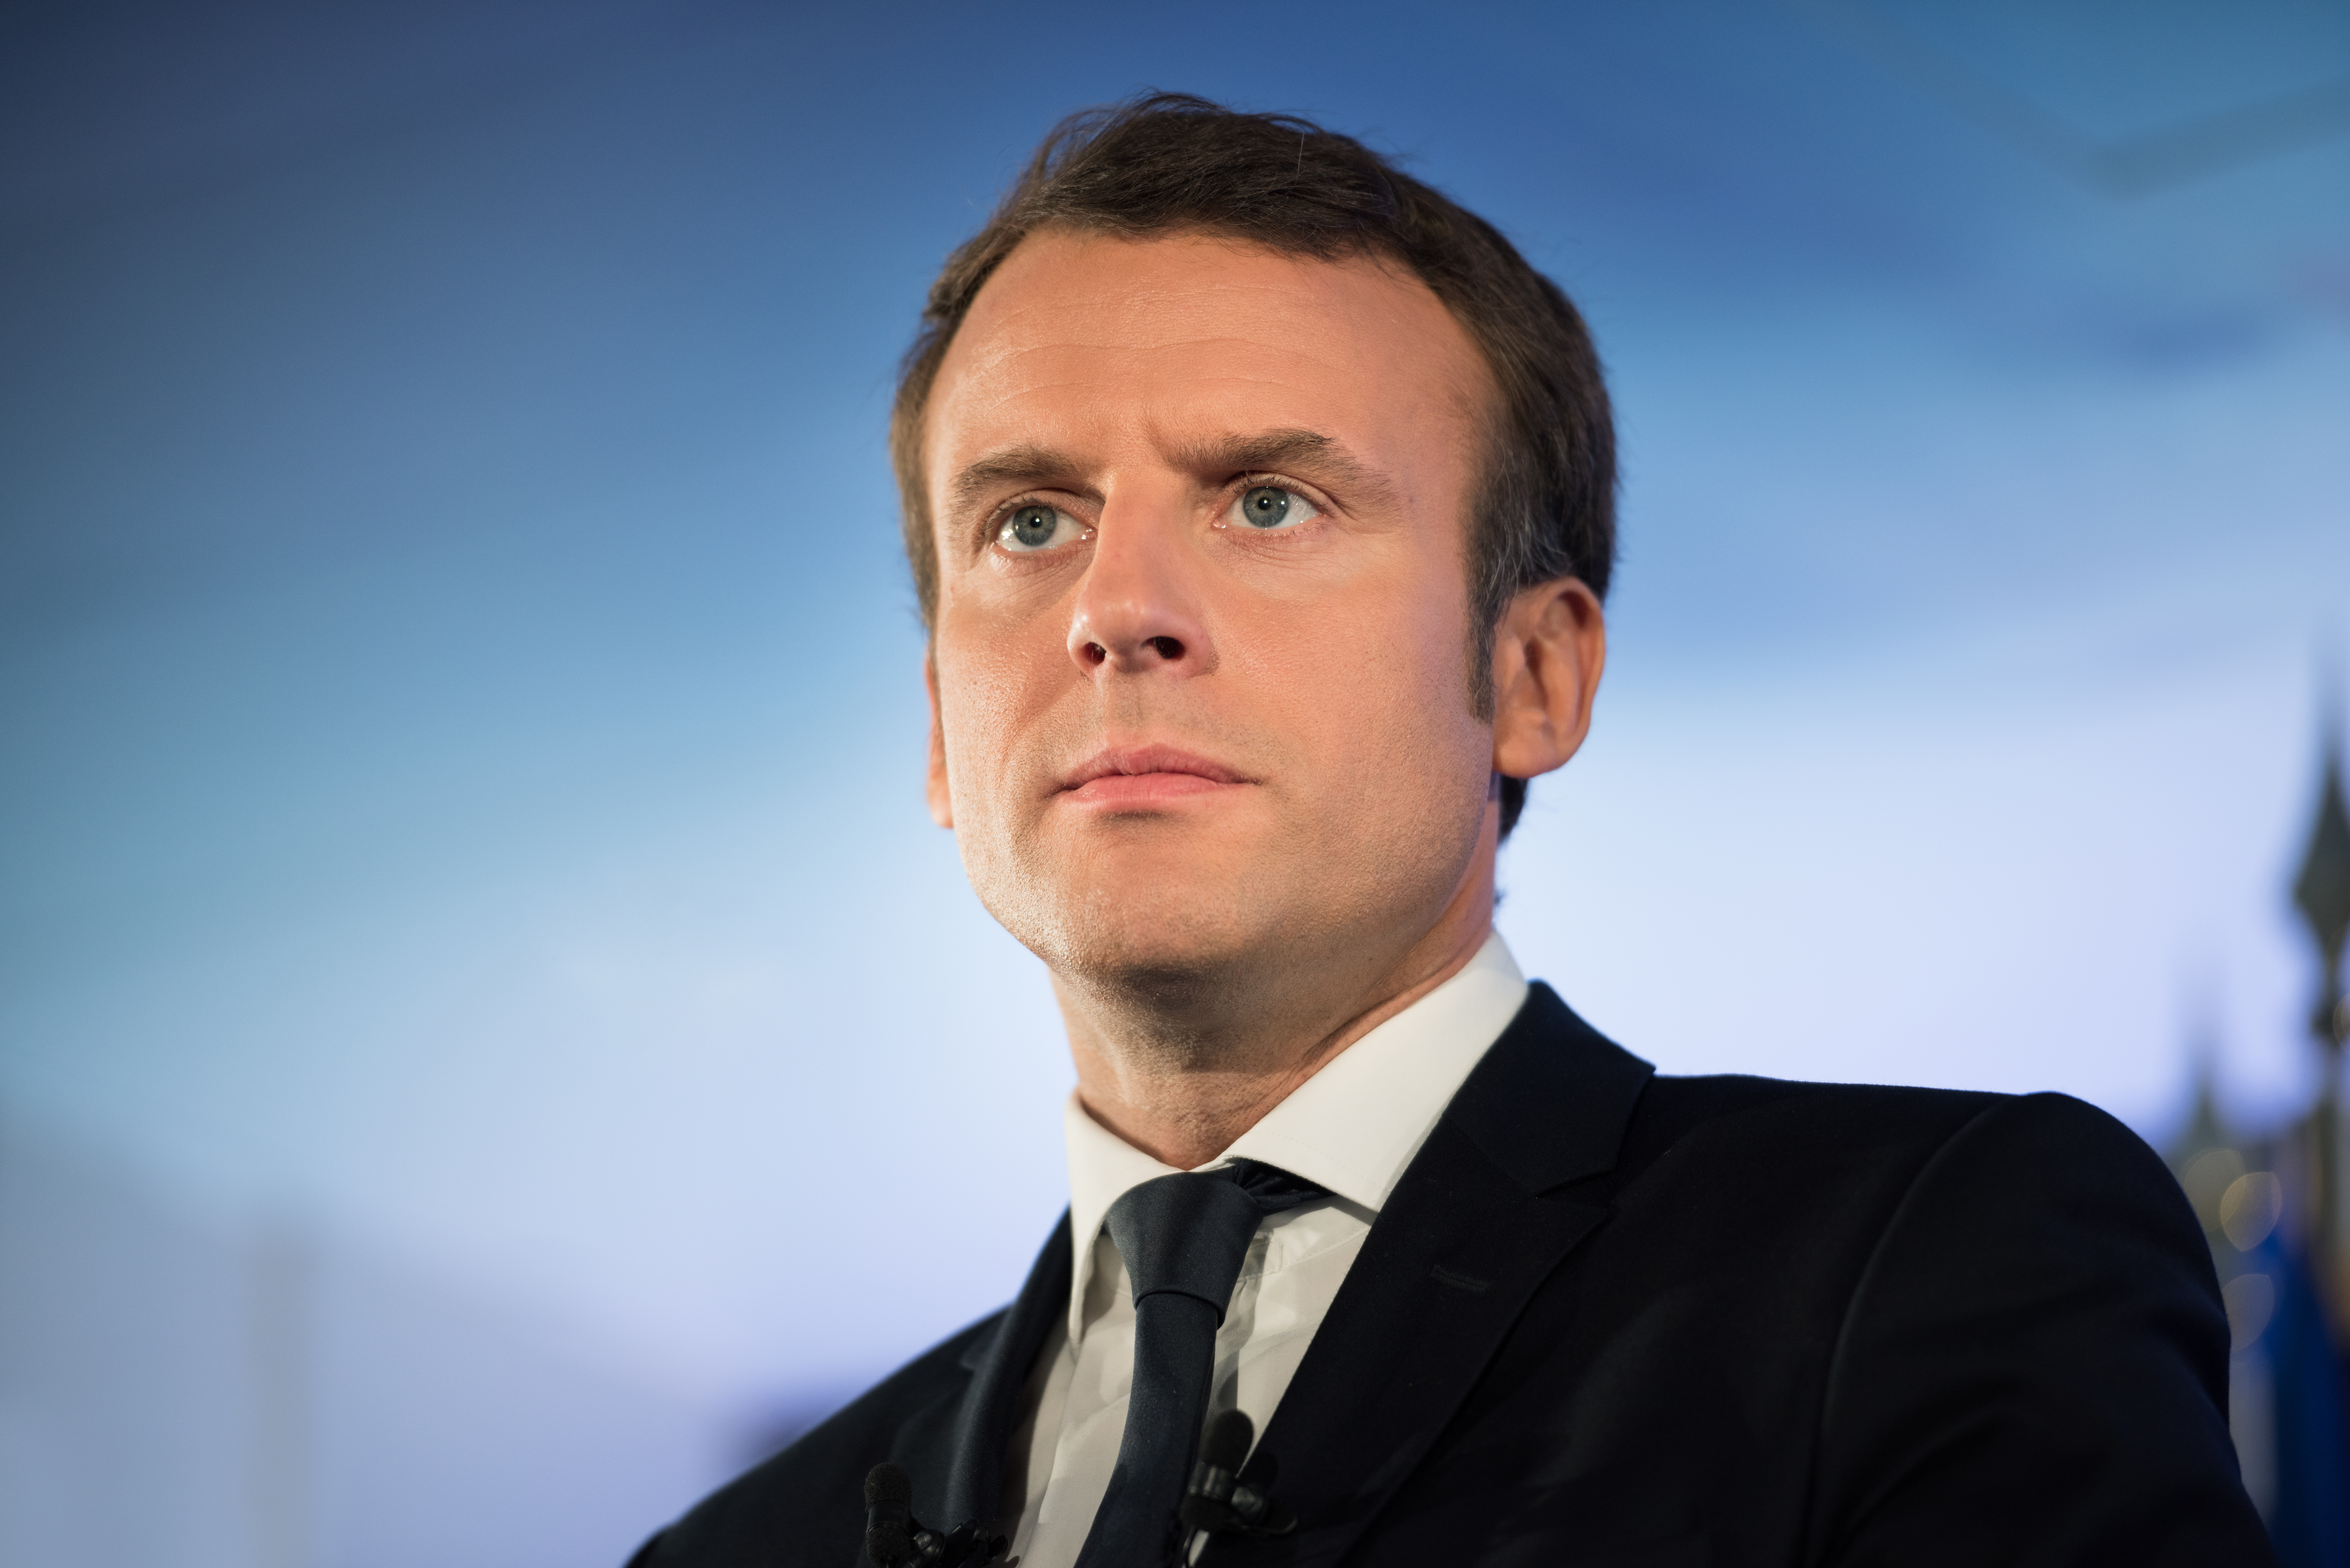 The Next President of France